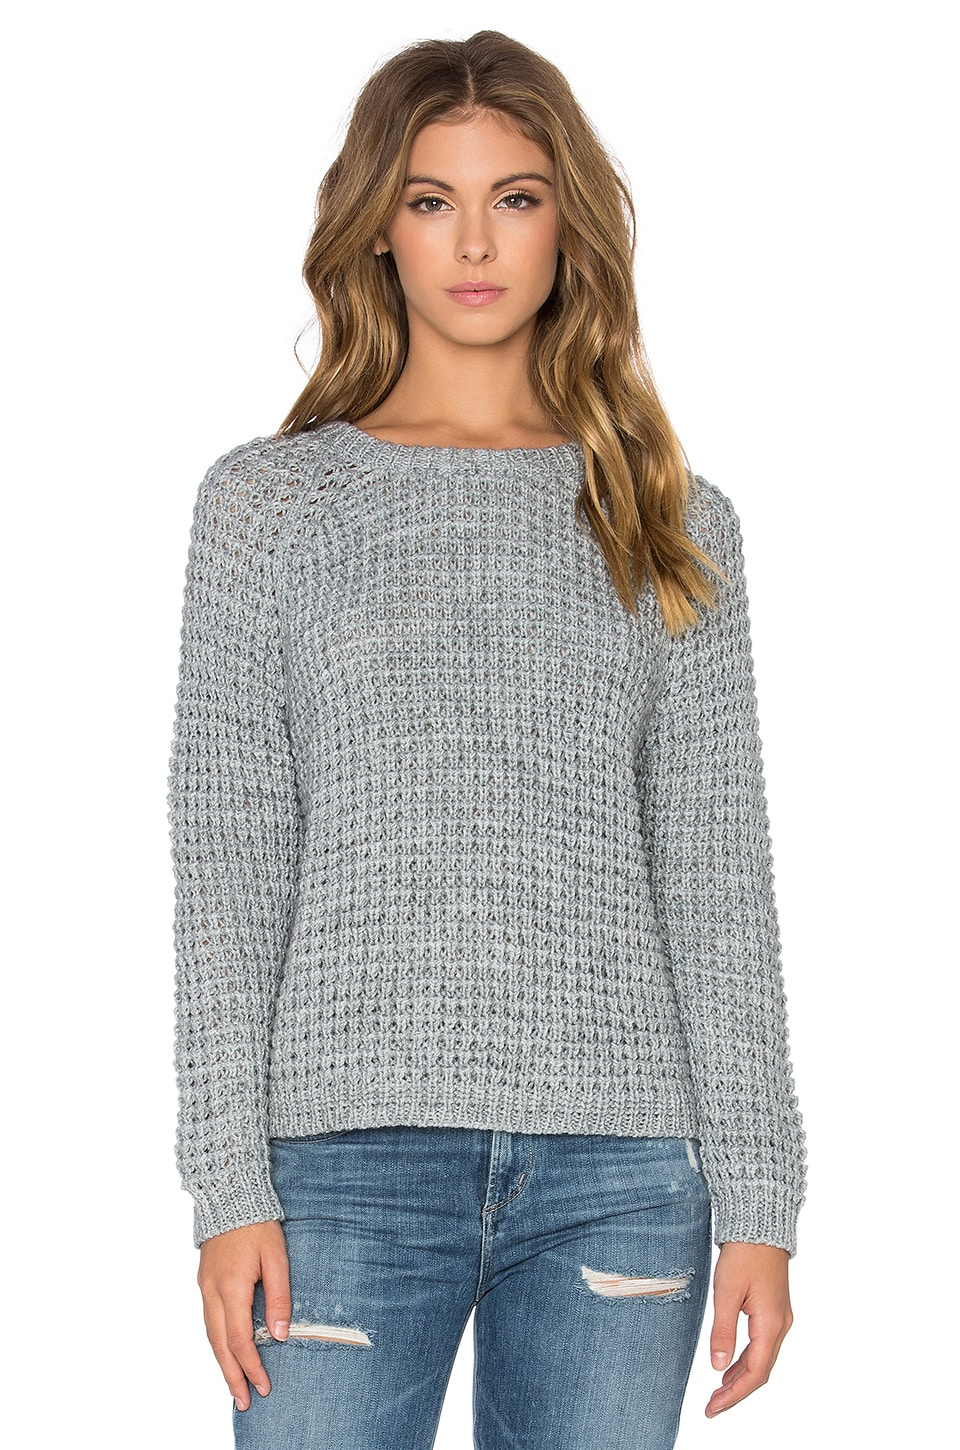 Bella Luxx Waffle Shrunken Sweater in Medium Grey